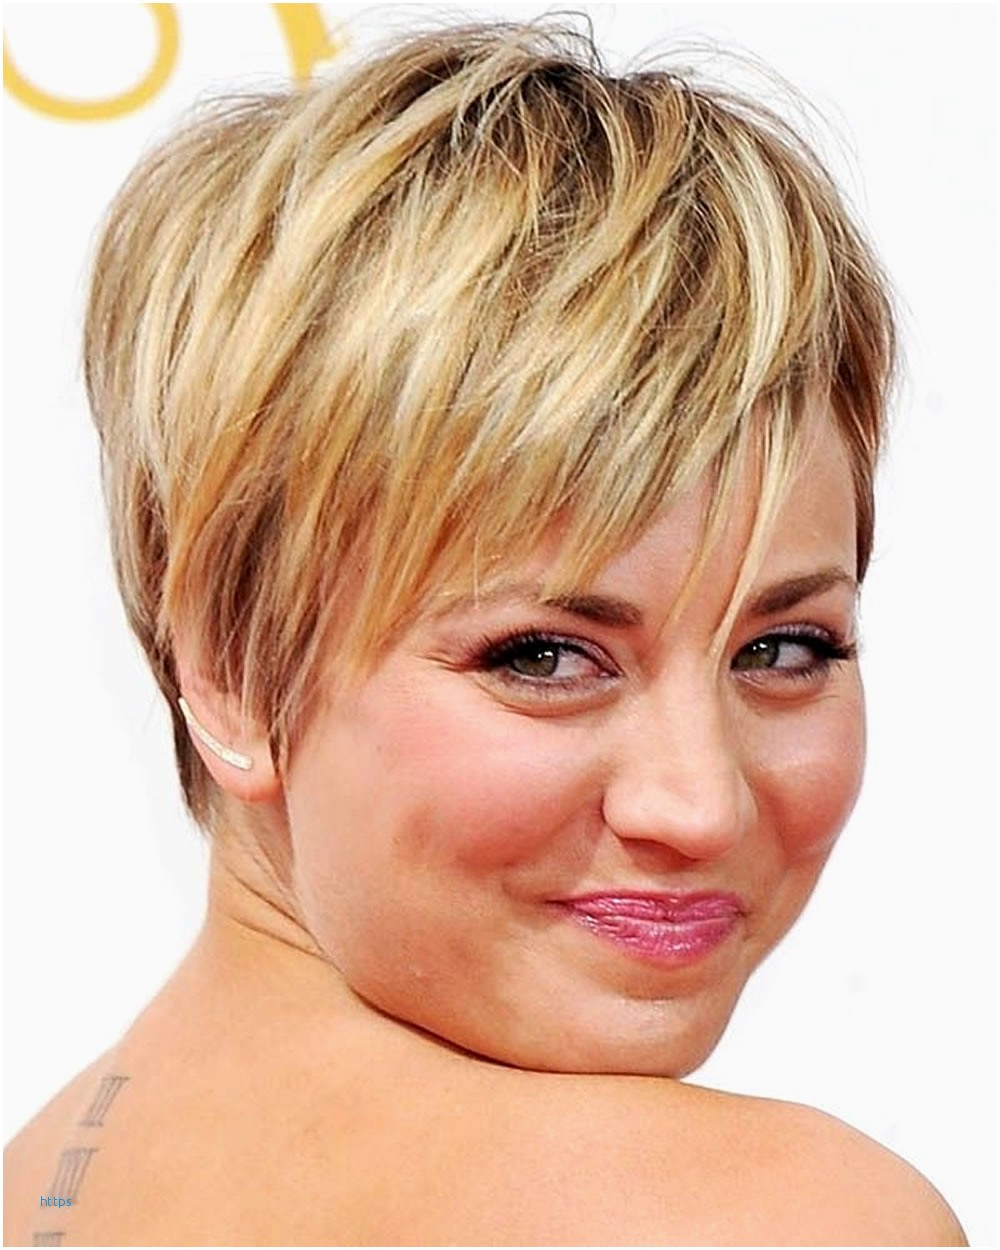 short hairstyles for round faces and thin hair New Pixie ...